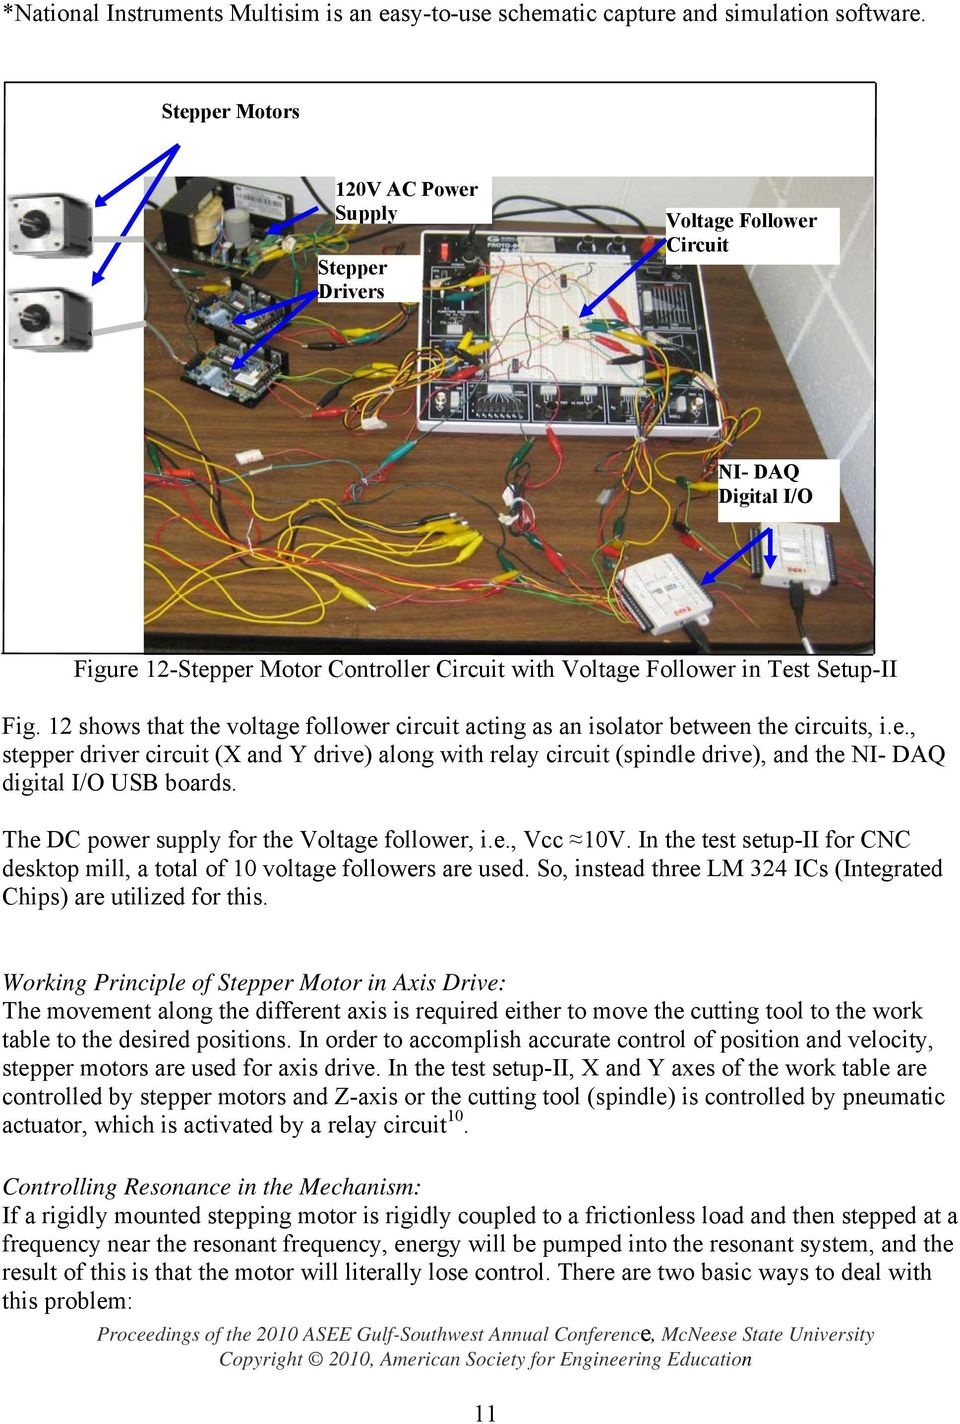 12 shows that the voltage follower circuit acting as an isolator between the circuits, i.e., stepper driver circuit (X and Y drive) along with relay circuit (spindle drive), and the NI- DAQ digital I/O USB boards.